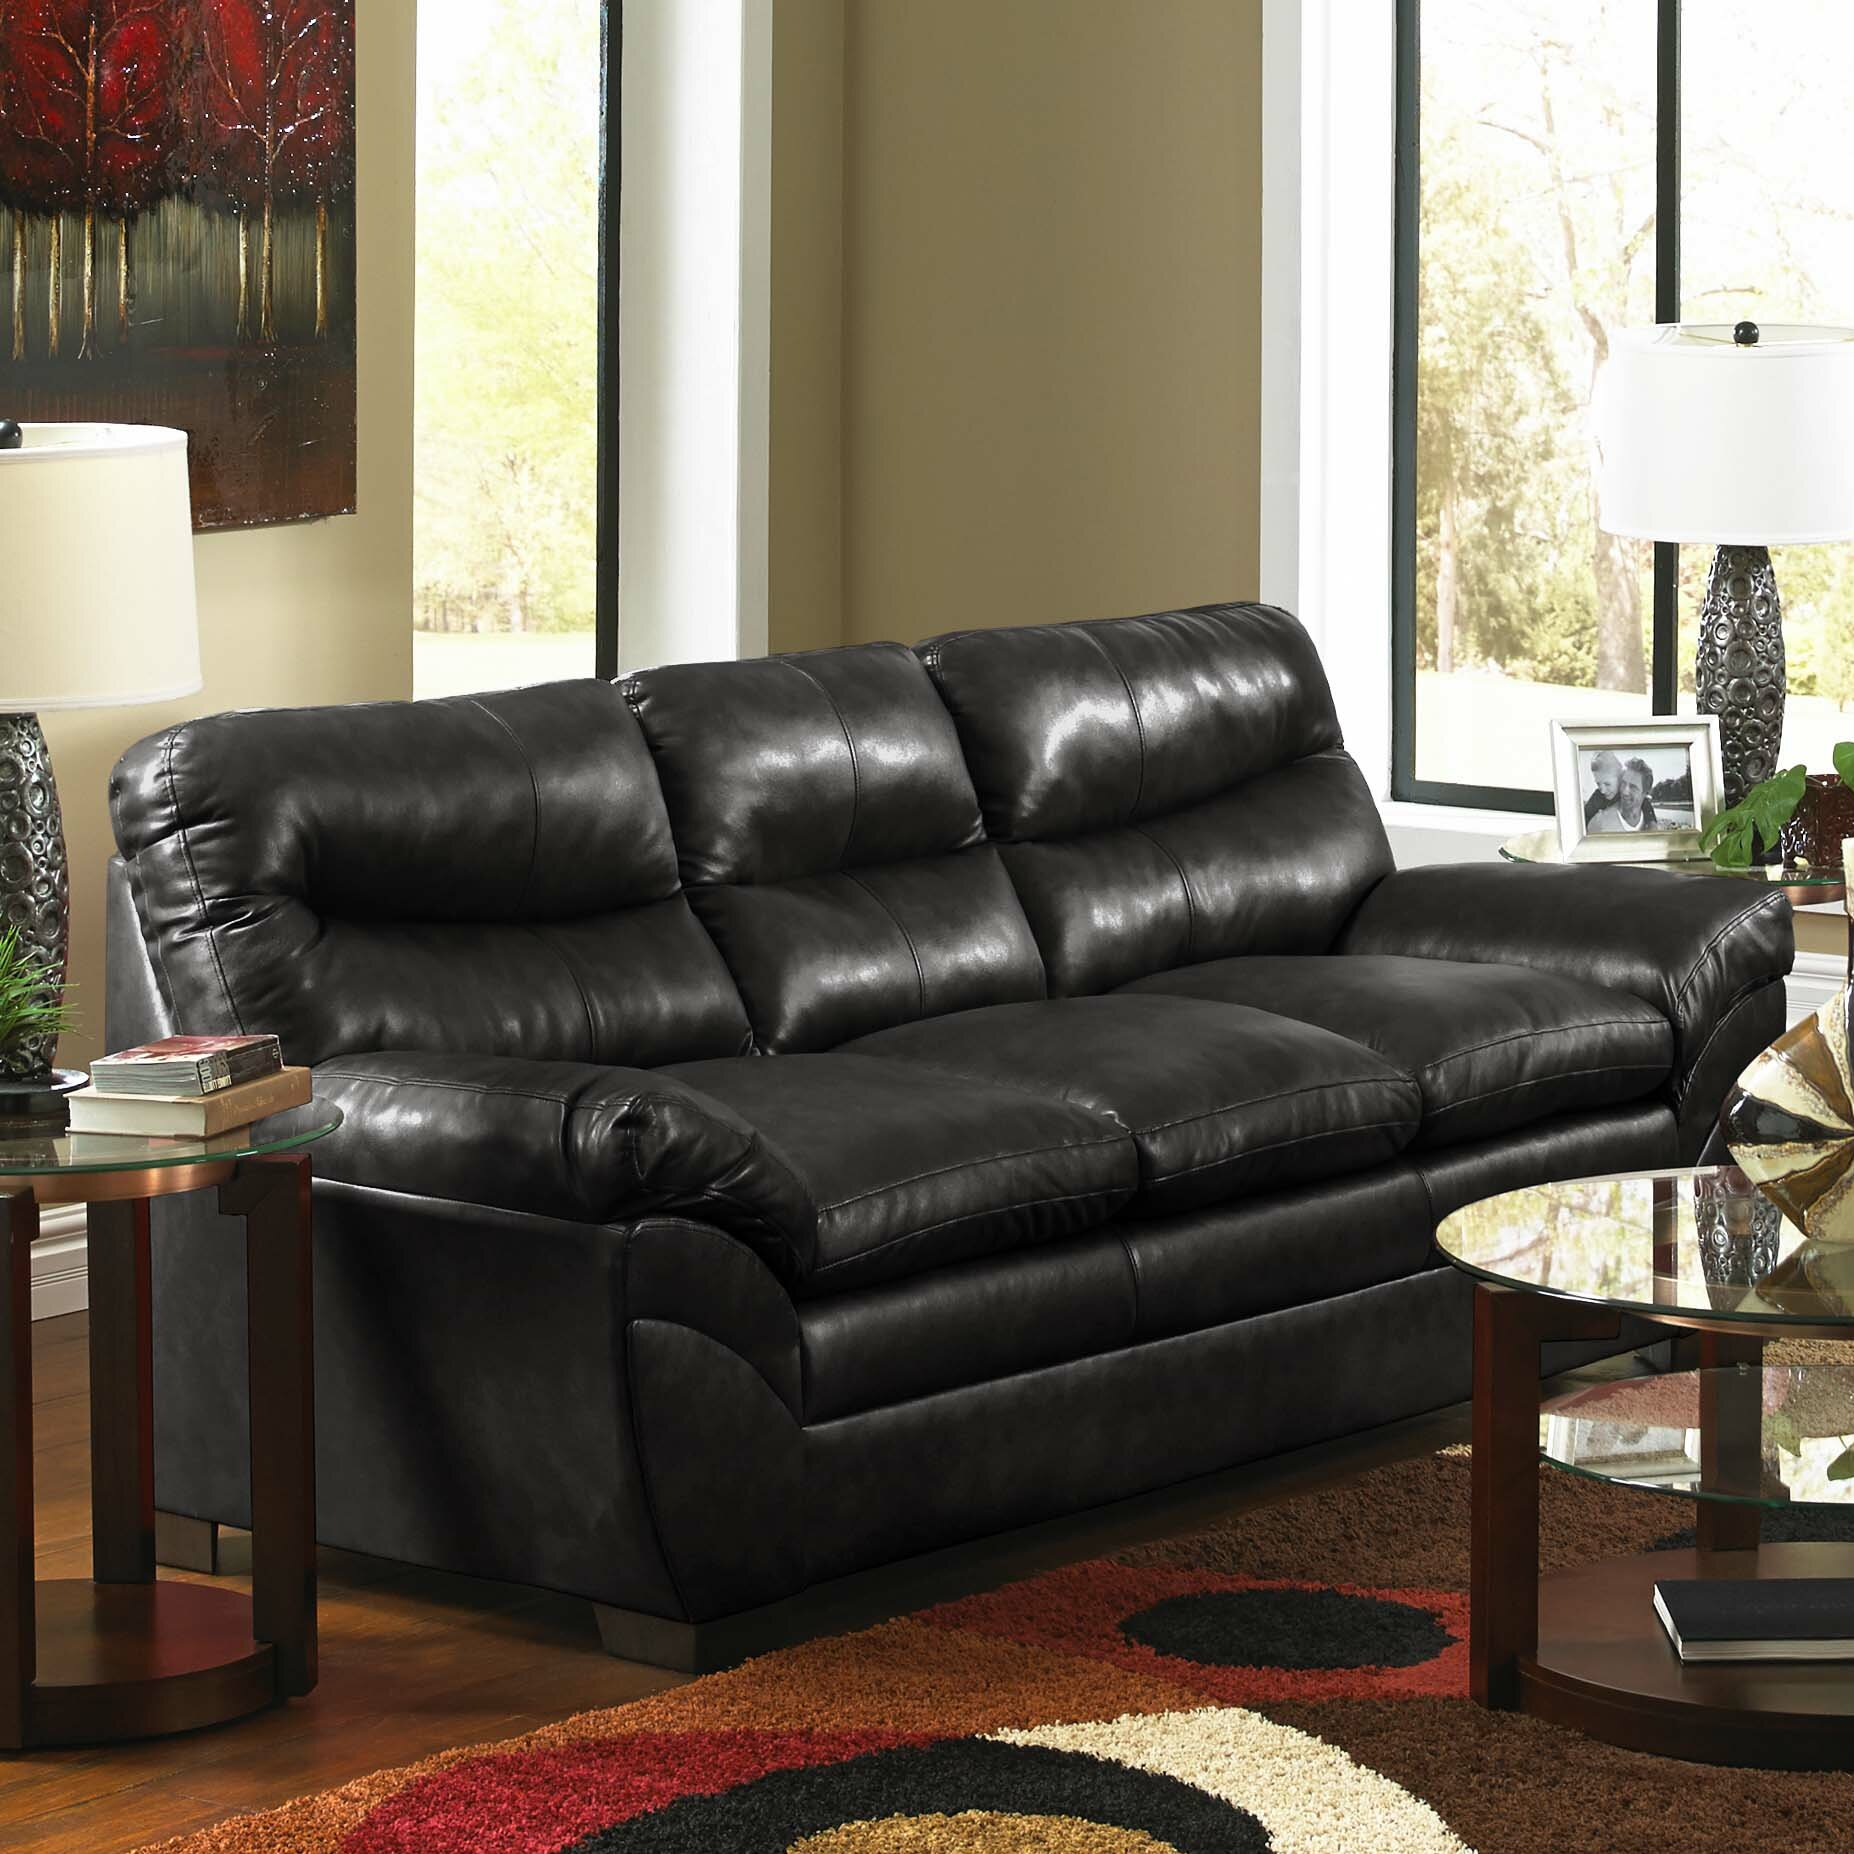 17 Wayfair Soho Leather Sofa